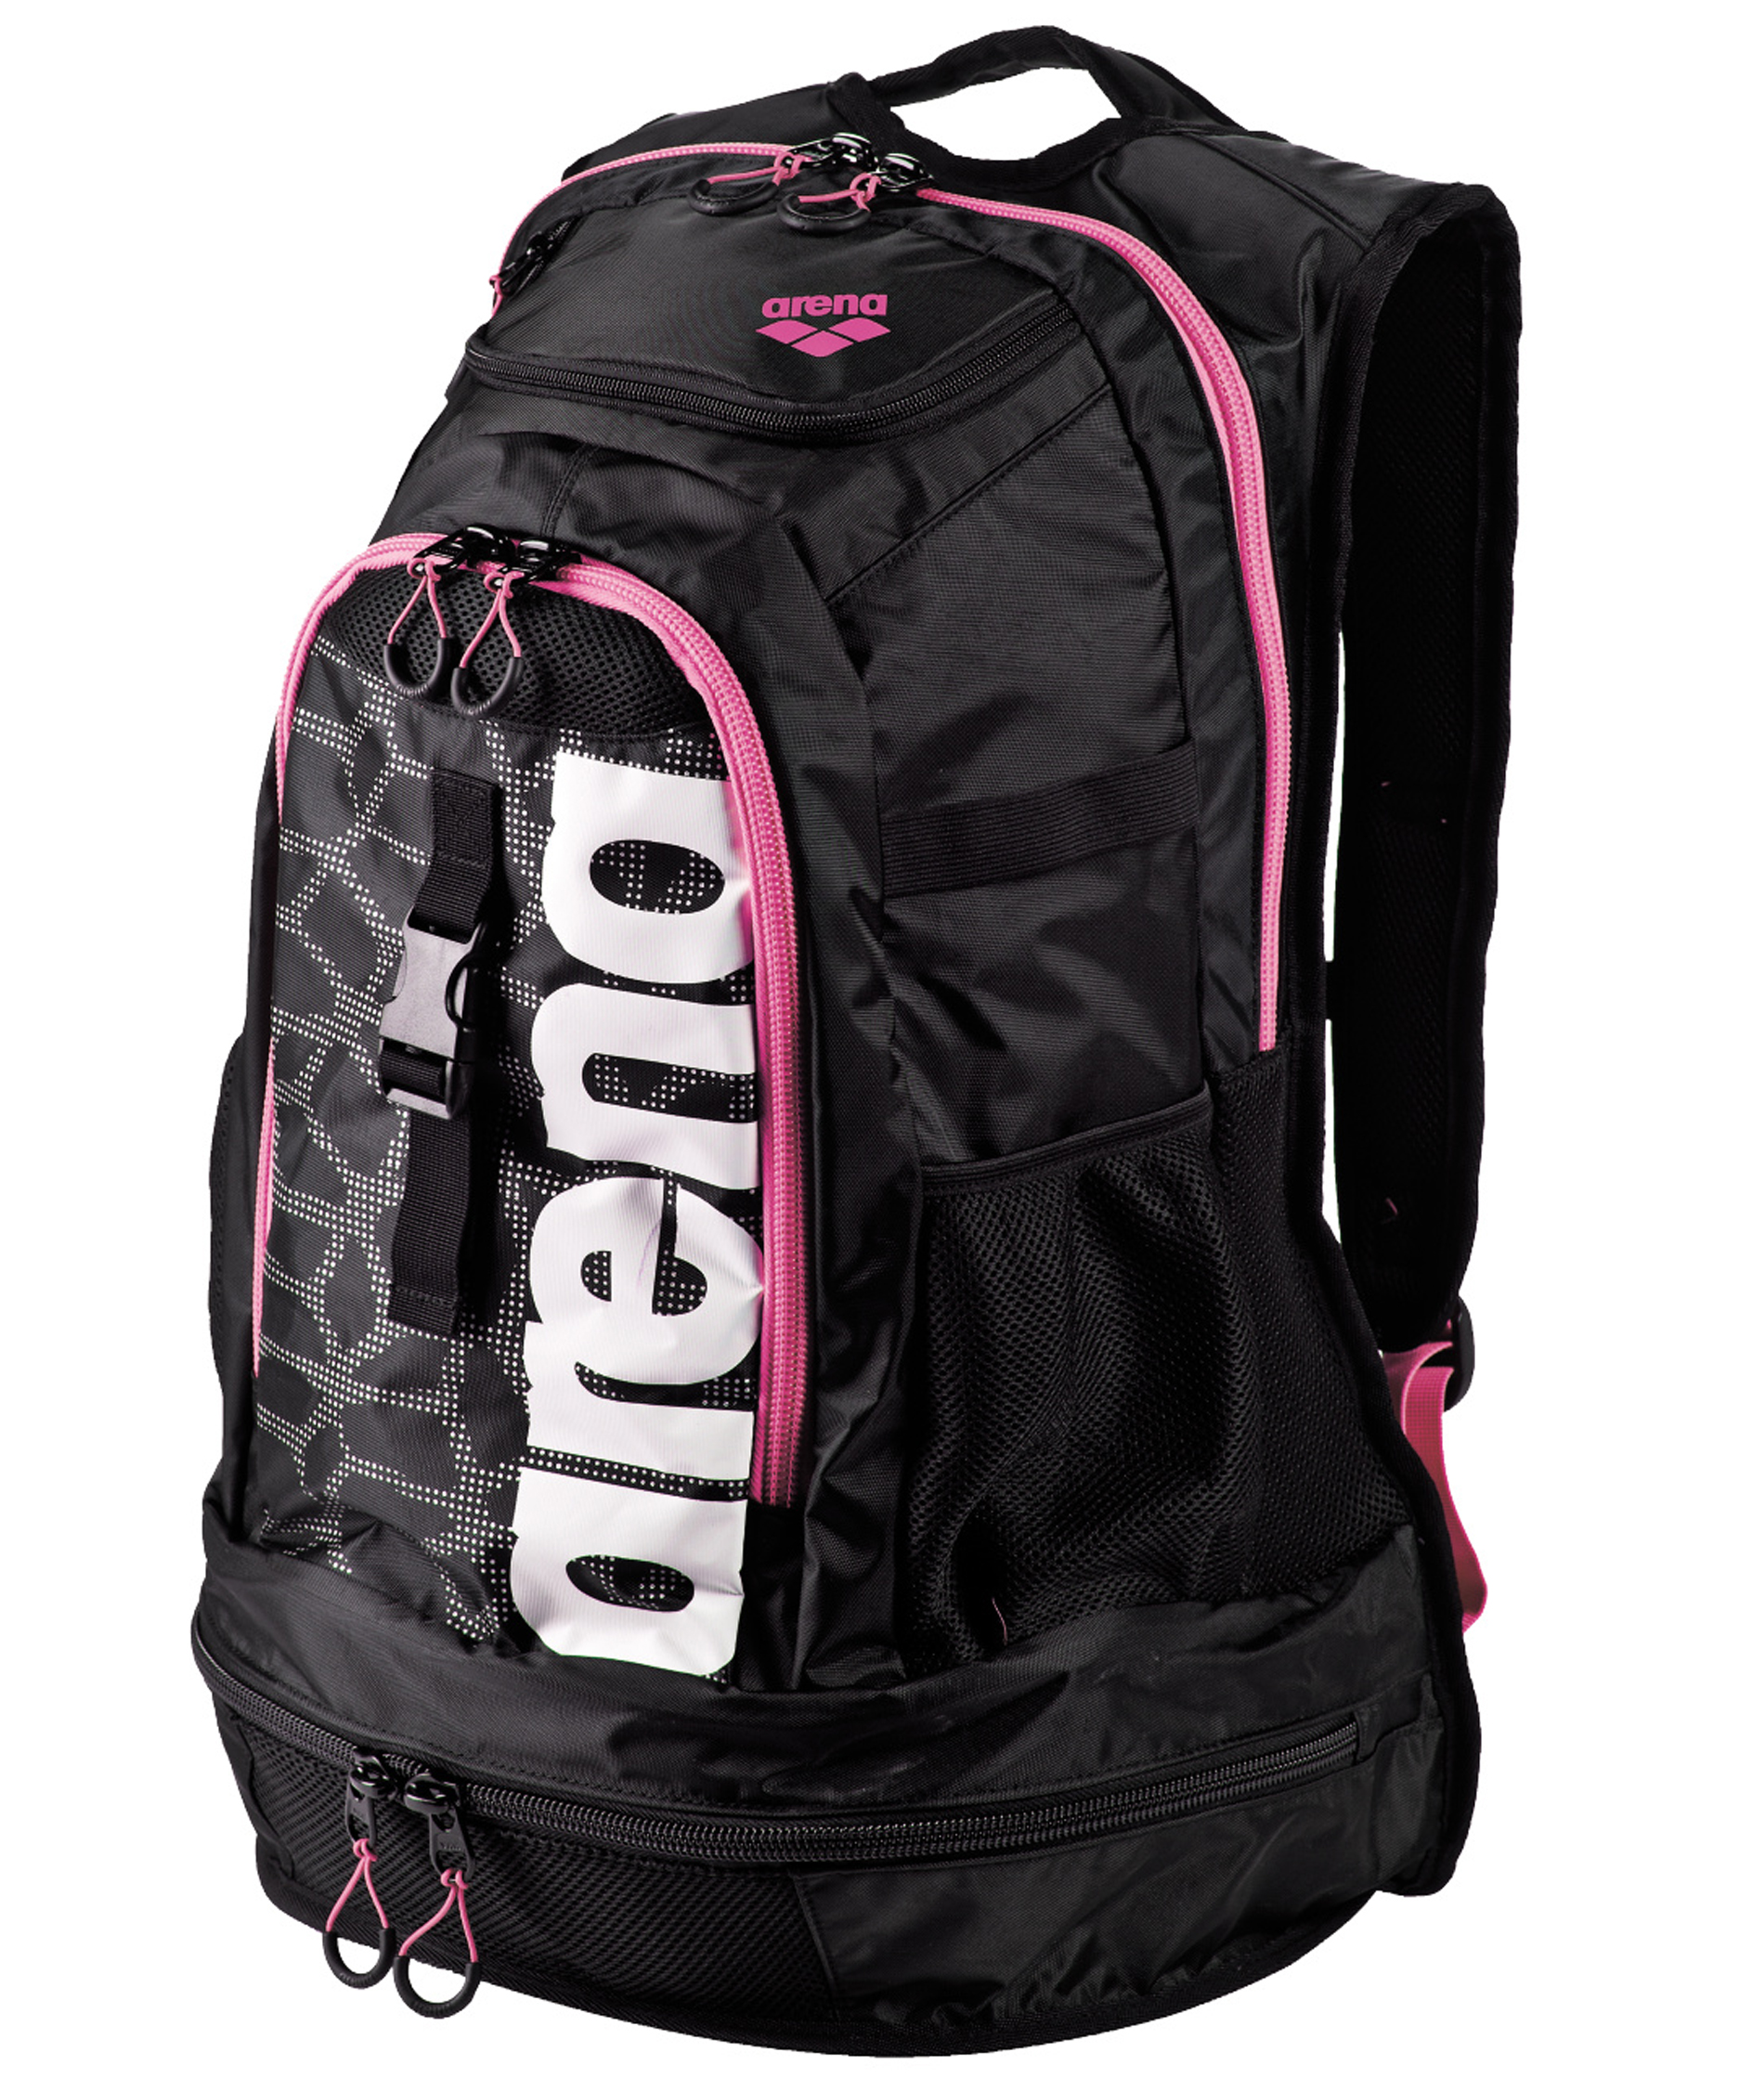 Arena Fastpack 2.1 Black X-Pivot/Fuchsia Backpack